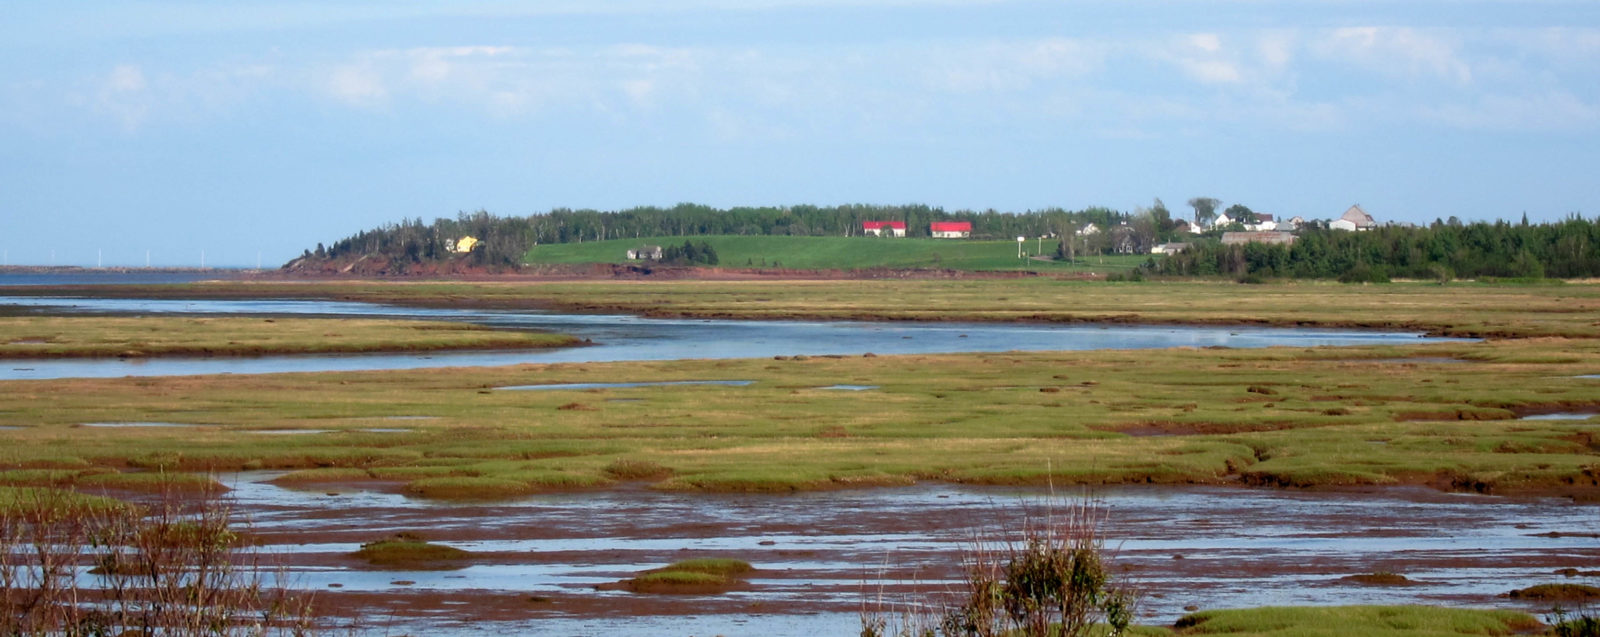 PEI seaside landscape